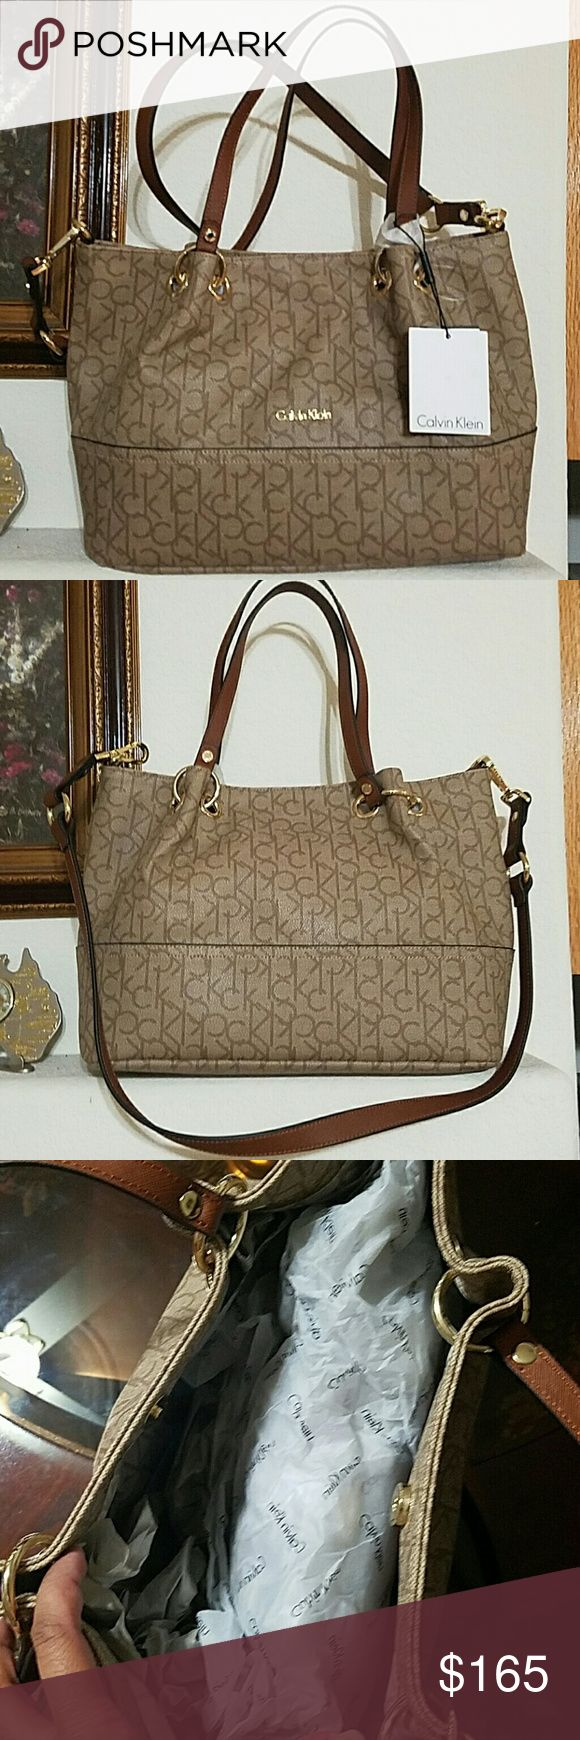 Calvin Klein Handbag Beautiful brand new with tag Calvin Klein Klein leather handbag. Interior features 1 zip pocket and 2 slip pockets. Magnetic snap closure. Gold tone hardware. No stains or damages. 100% authentic. Approx measurements provided. Calvin Klein Bags